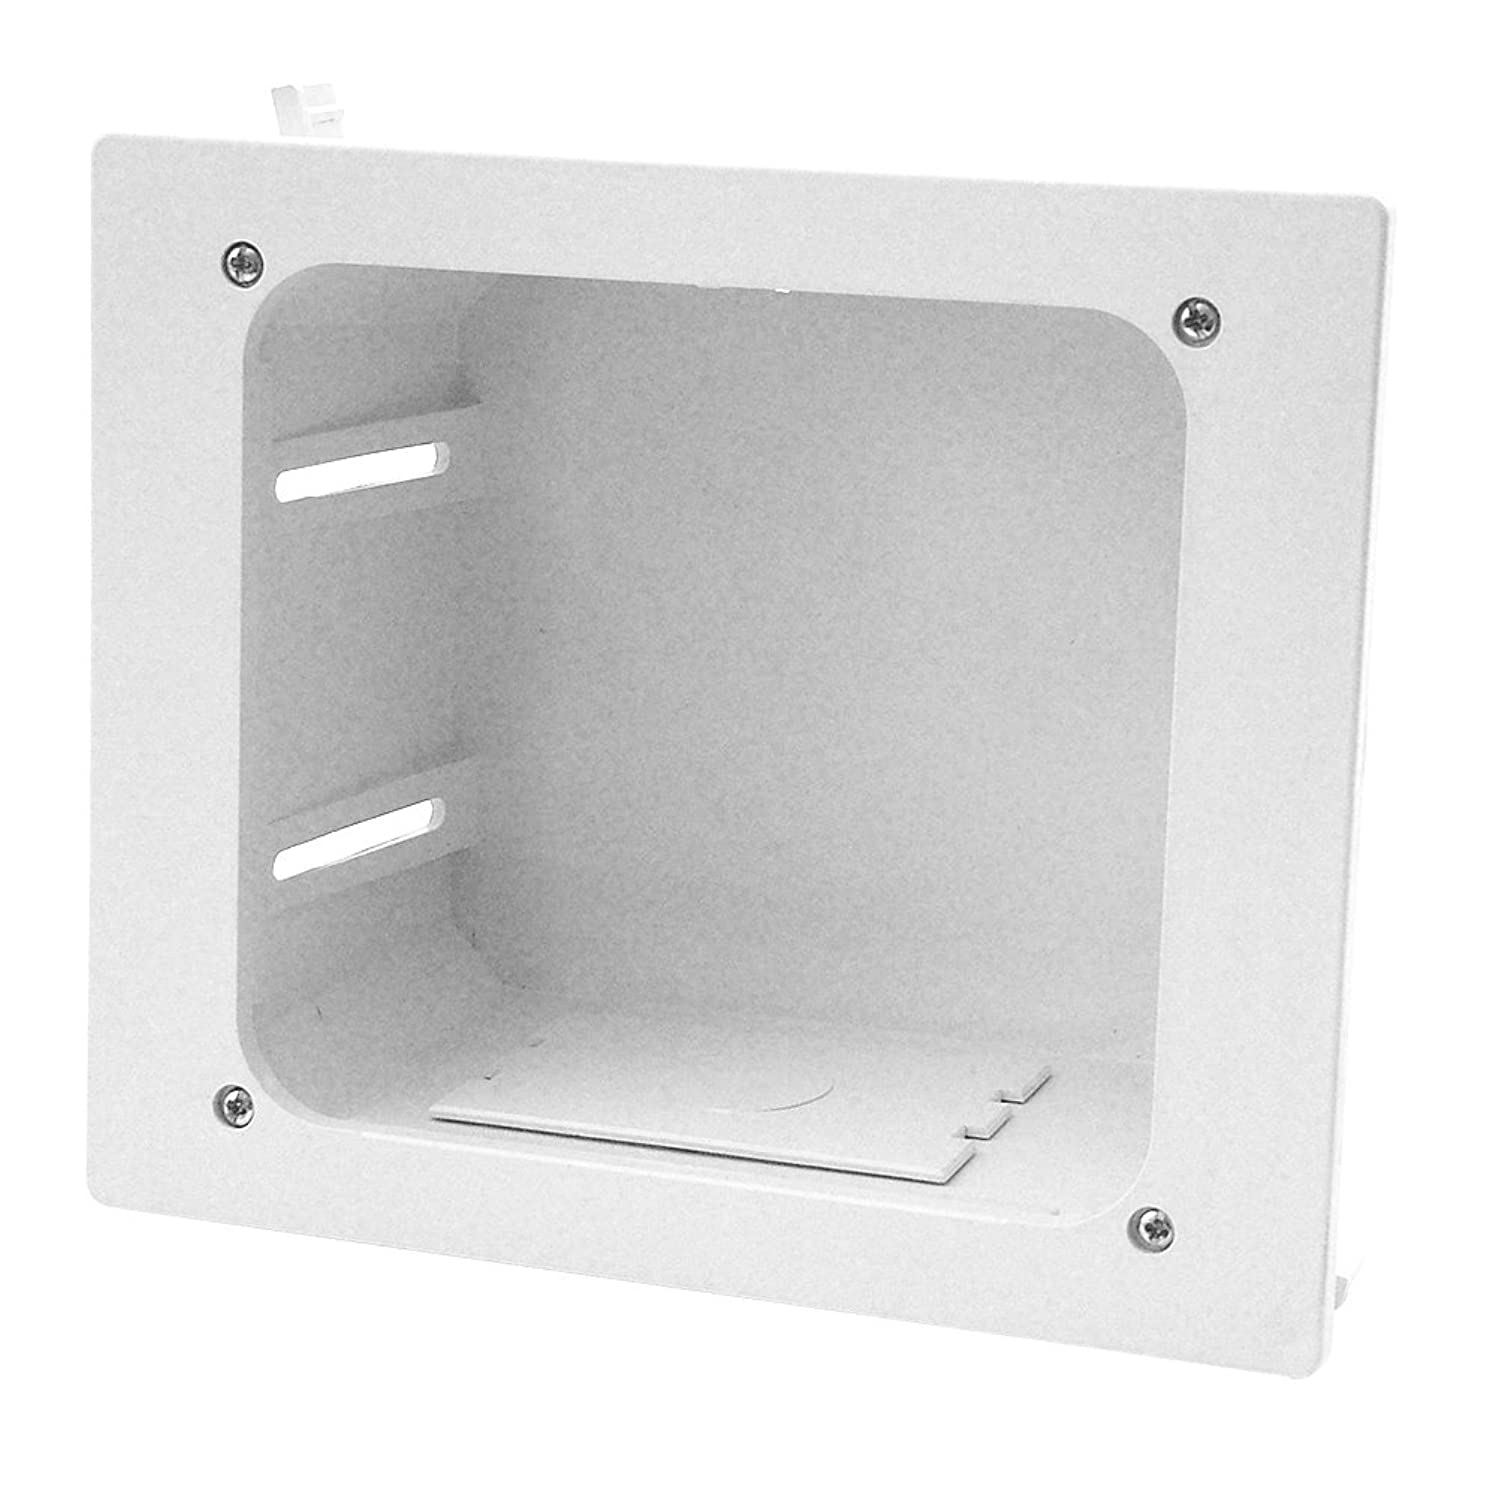 Construct Pro In-wall Recessed Entertainment Box, White